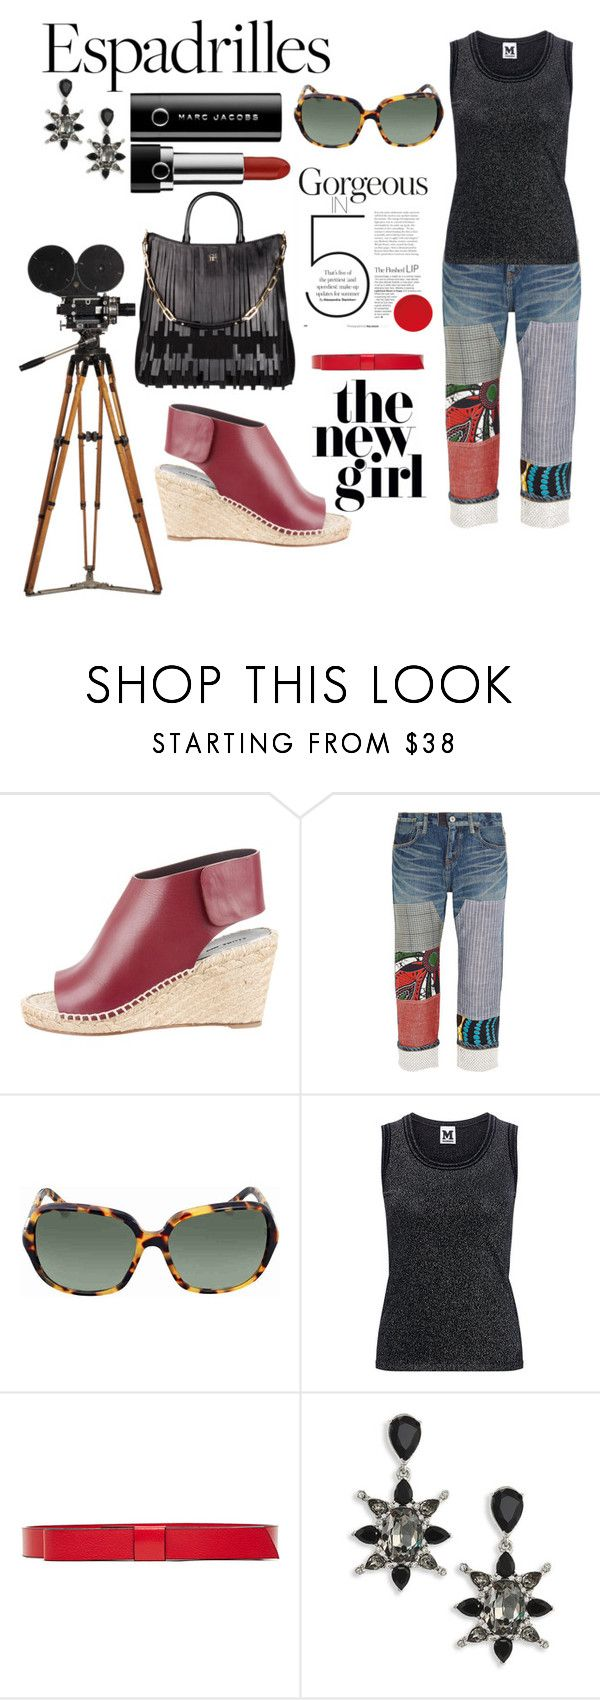 """IT'S ALMOST FRIDAY!"" by tinagarrison ❤ liked on Polyvore featuring CÉLINE, Junya Watanabe, CH Carolina Herrera, Ralph Lauren, M Missoni, Marni and Oscar de la Renta"